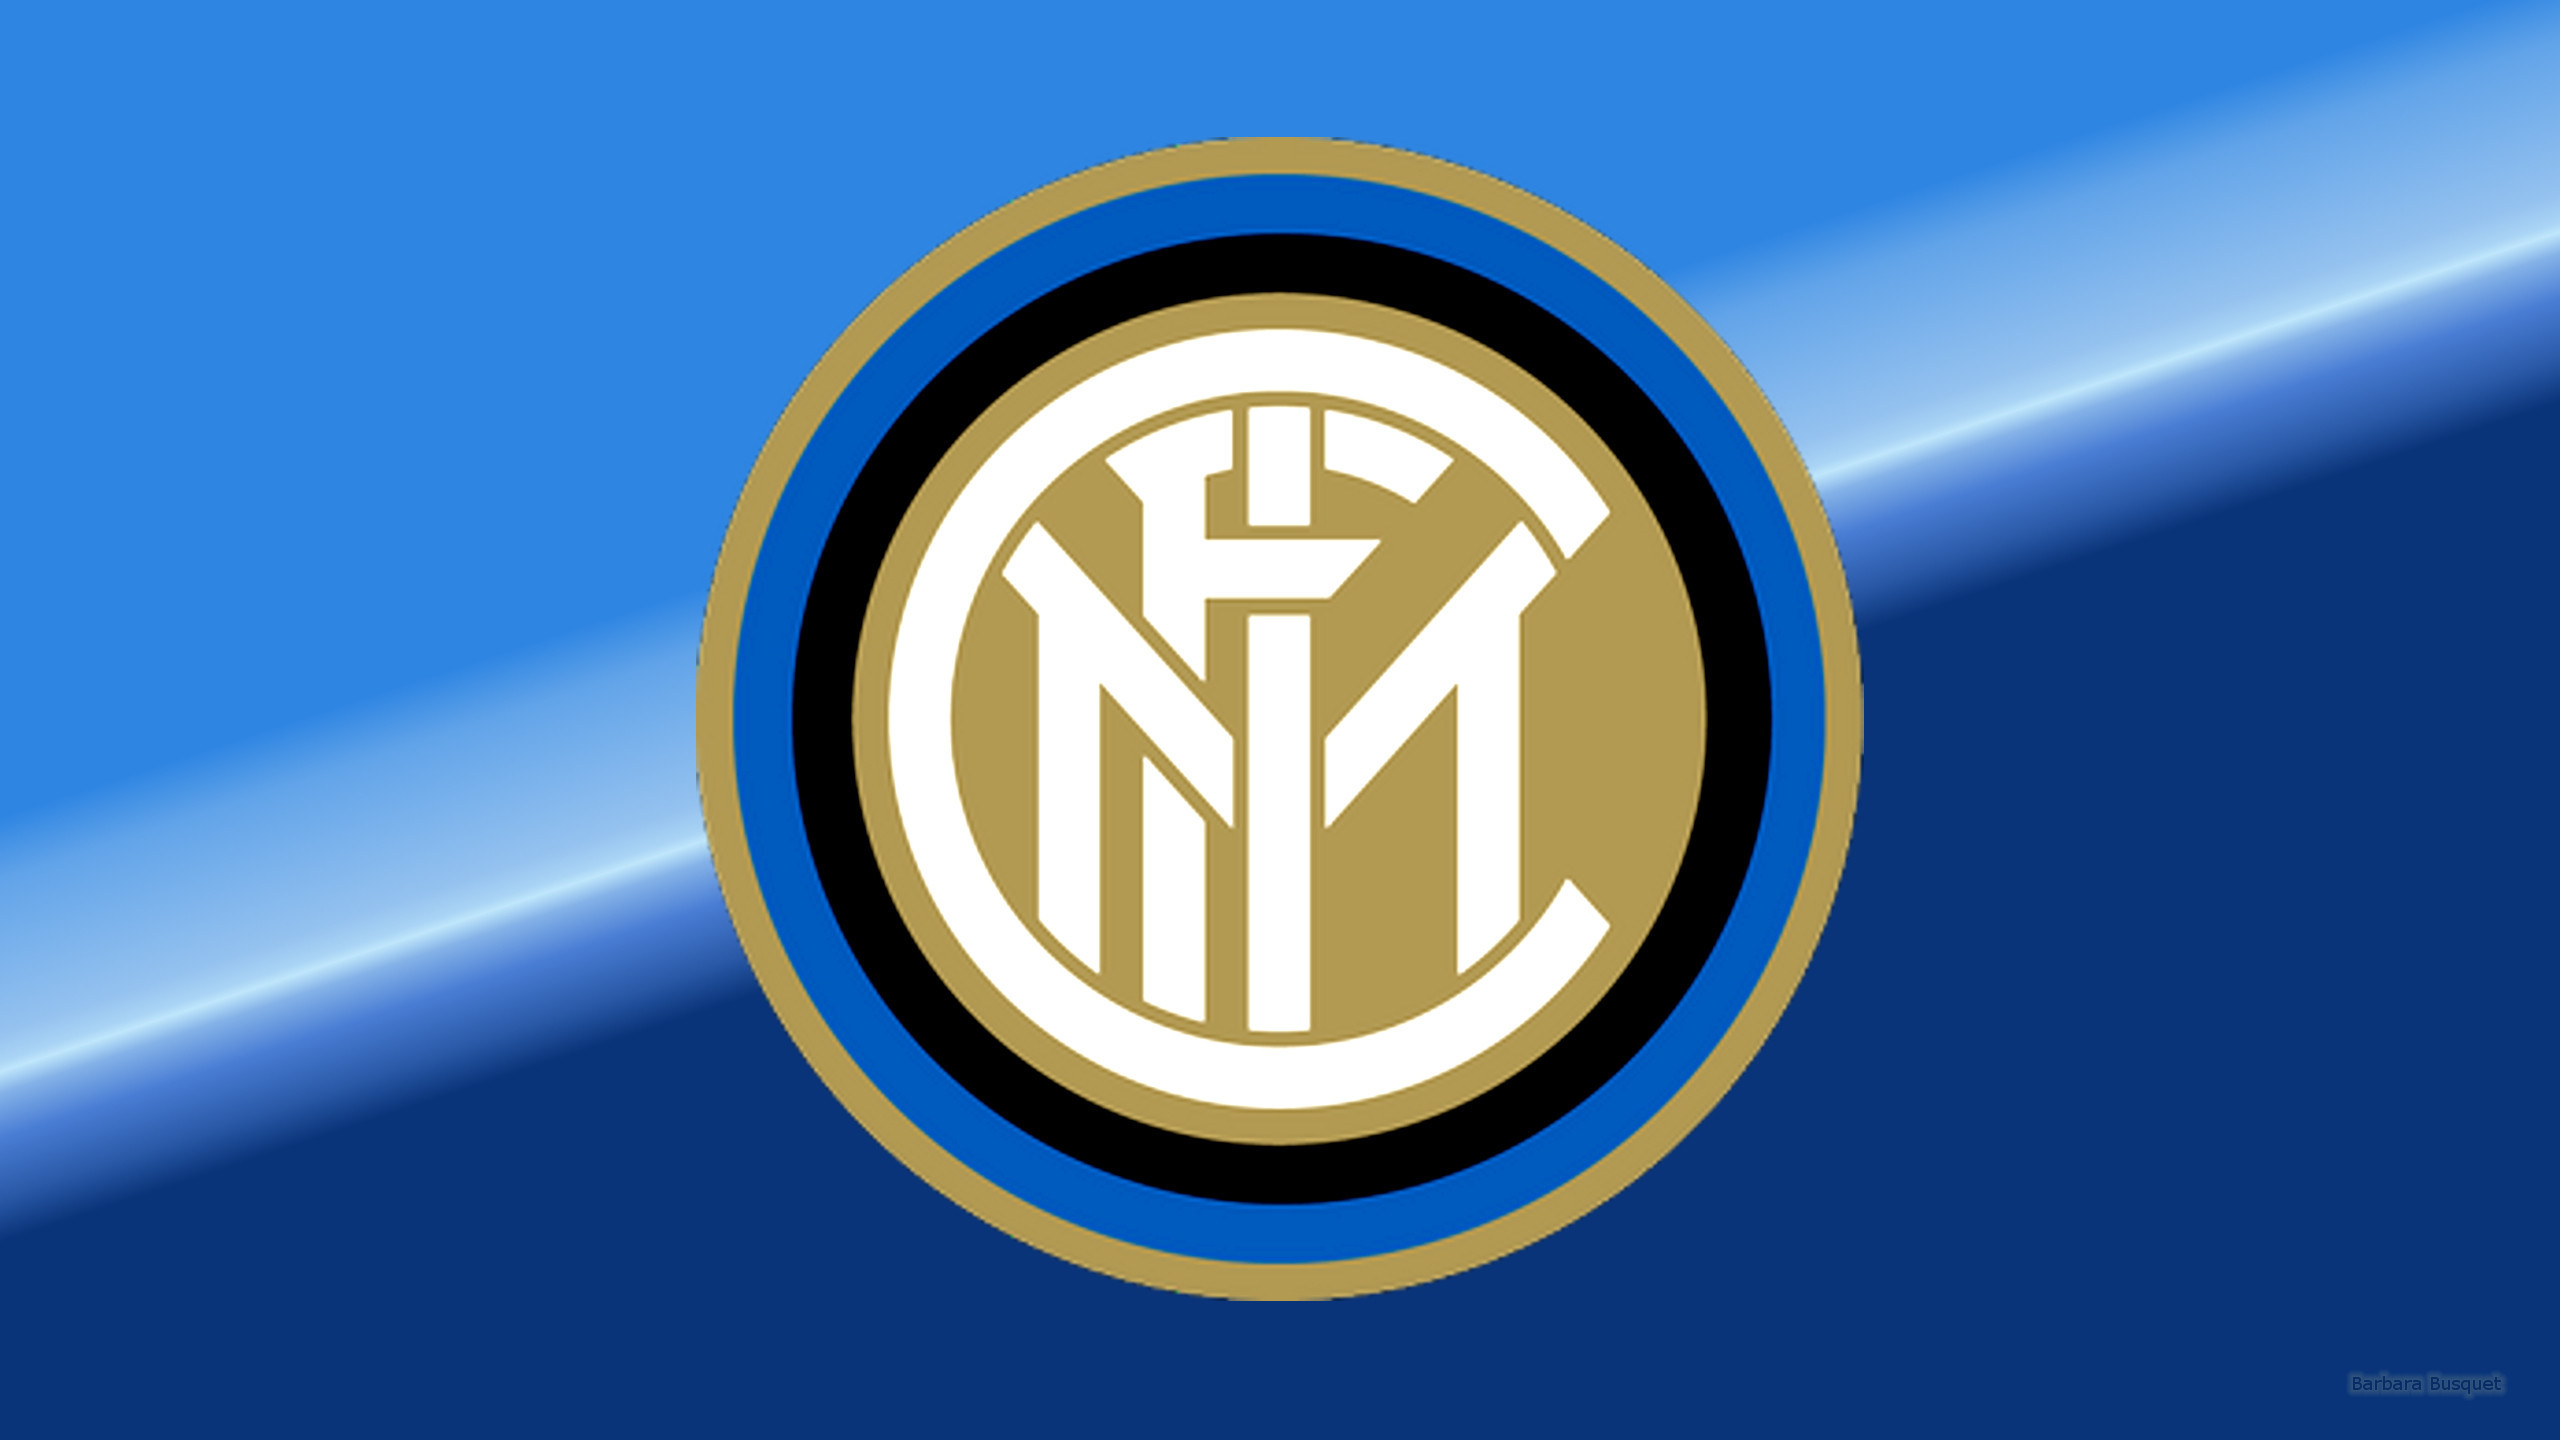 inter wallpapers  59 images italy soccer logo poster italy soccer badge